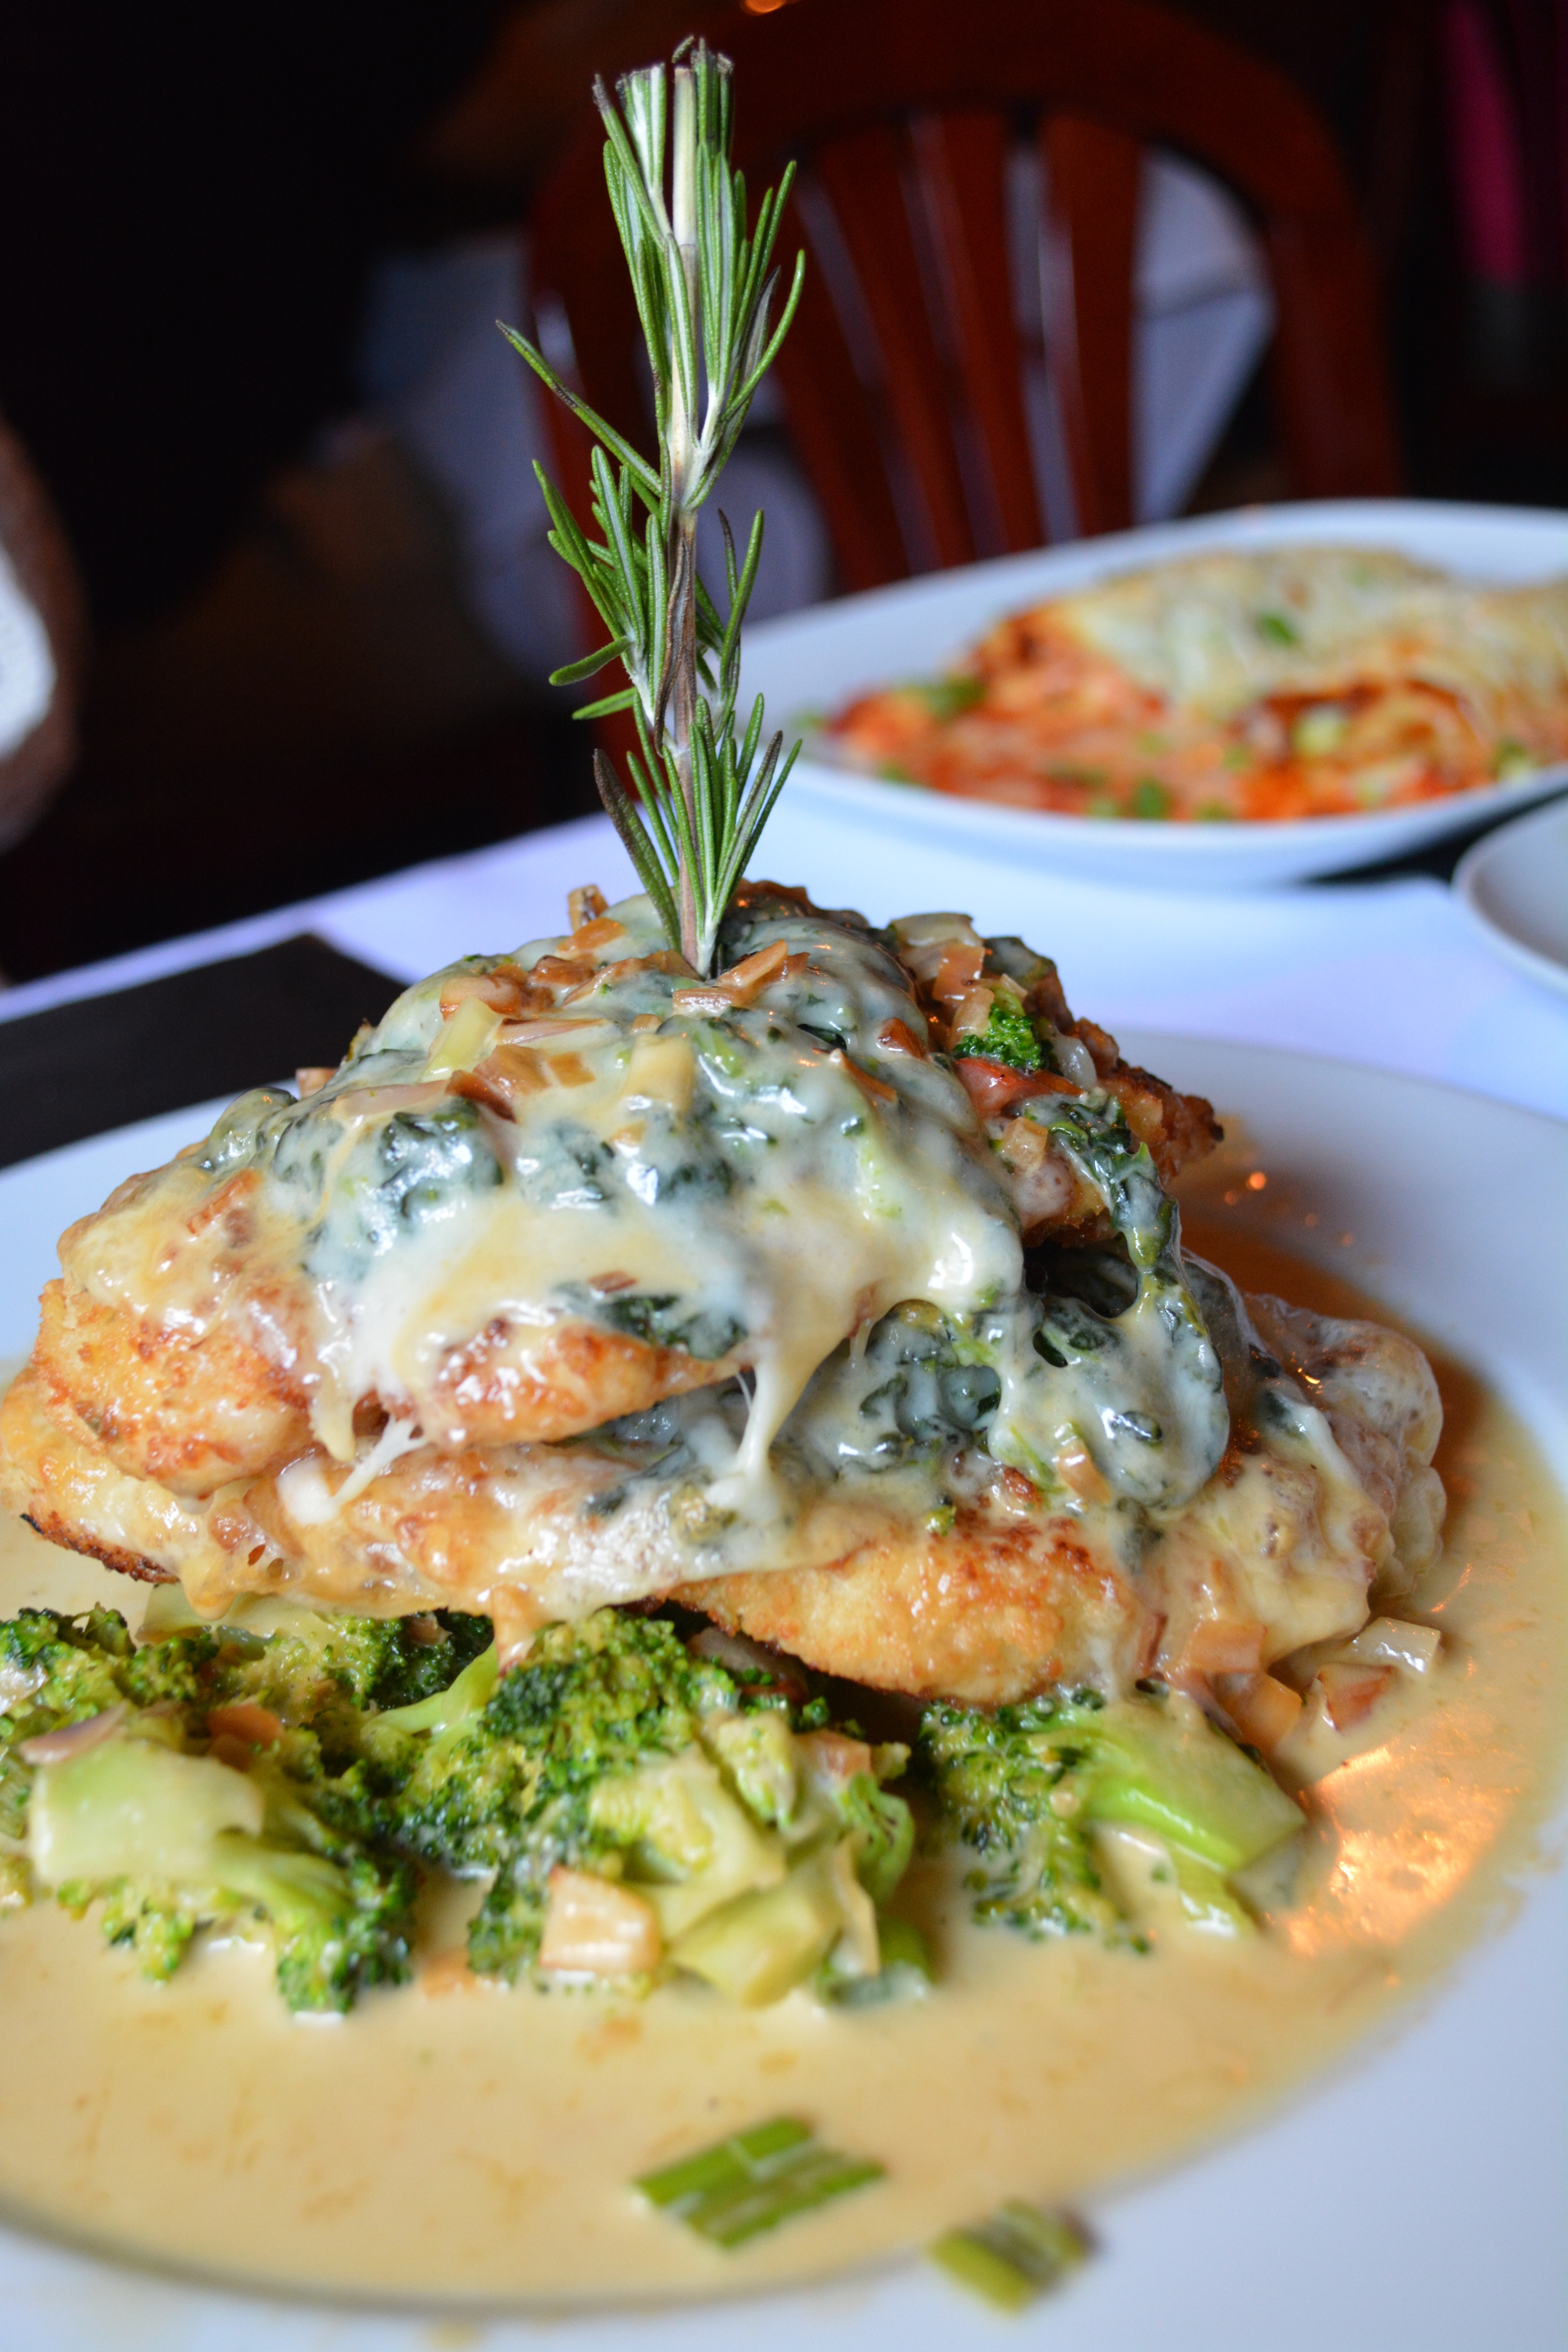 The Pollo Provolone ($24) at Sur is served in a shallot and broccoli cream sauce.     (Sur Argentinian Steakhouse, 314 New York Avenue, Huntington, 11743. 631-470-6300)  Long Islander News photo/ Arielle Dollinger